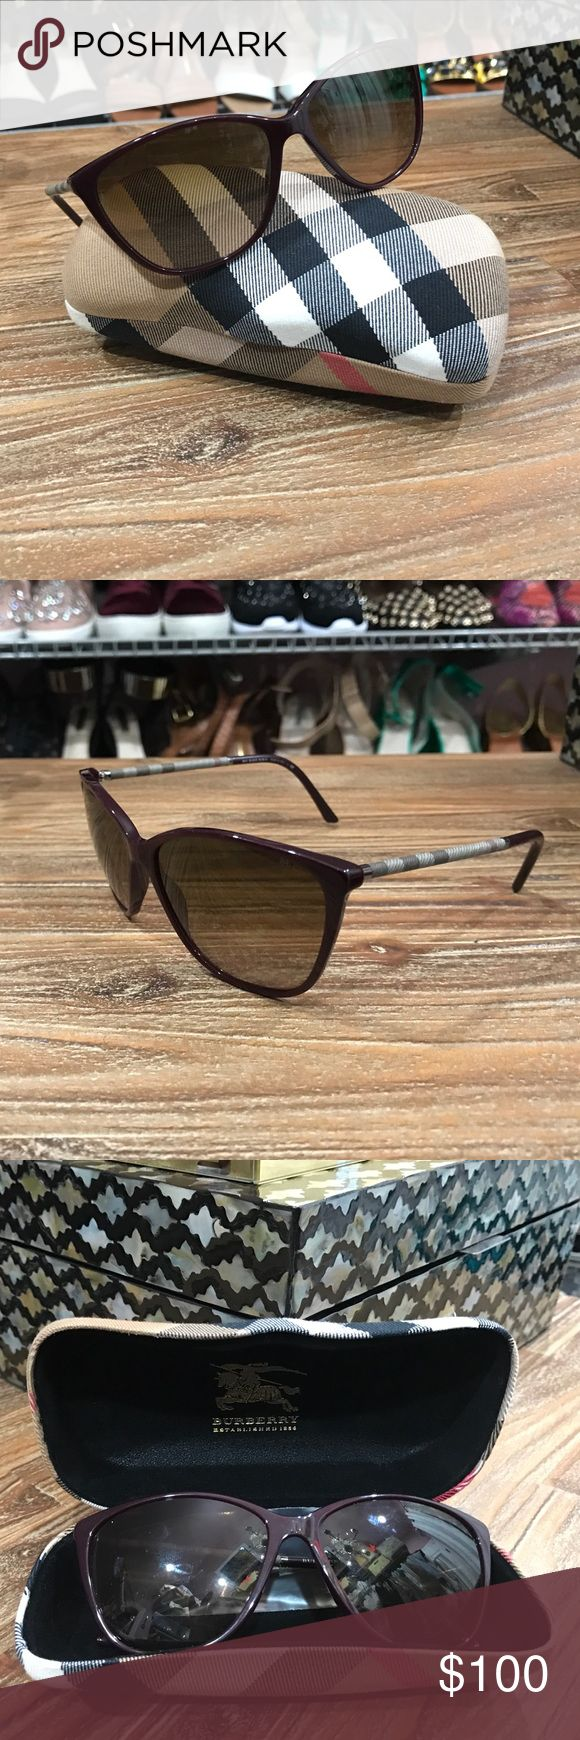 Burgandy Burberry Sunglasses Burgundy Burberry Sunglasses complete with designer case. These sunglasses will make you look cool, no matter the temperature. In great shape and barely used. Burberry Accessories Sunglasses